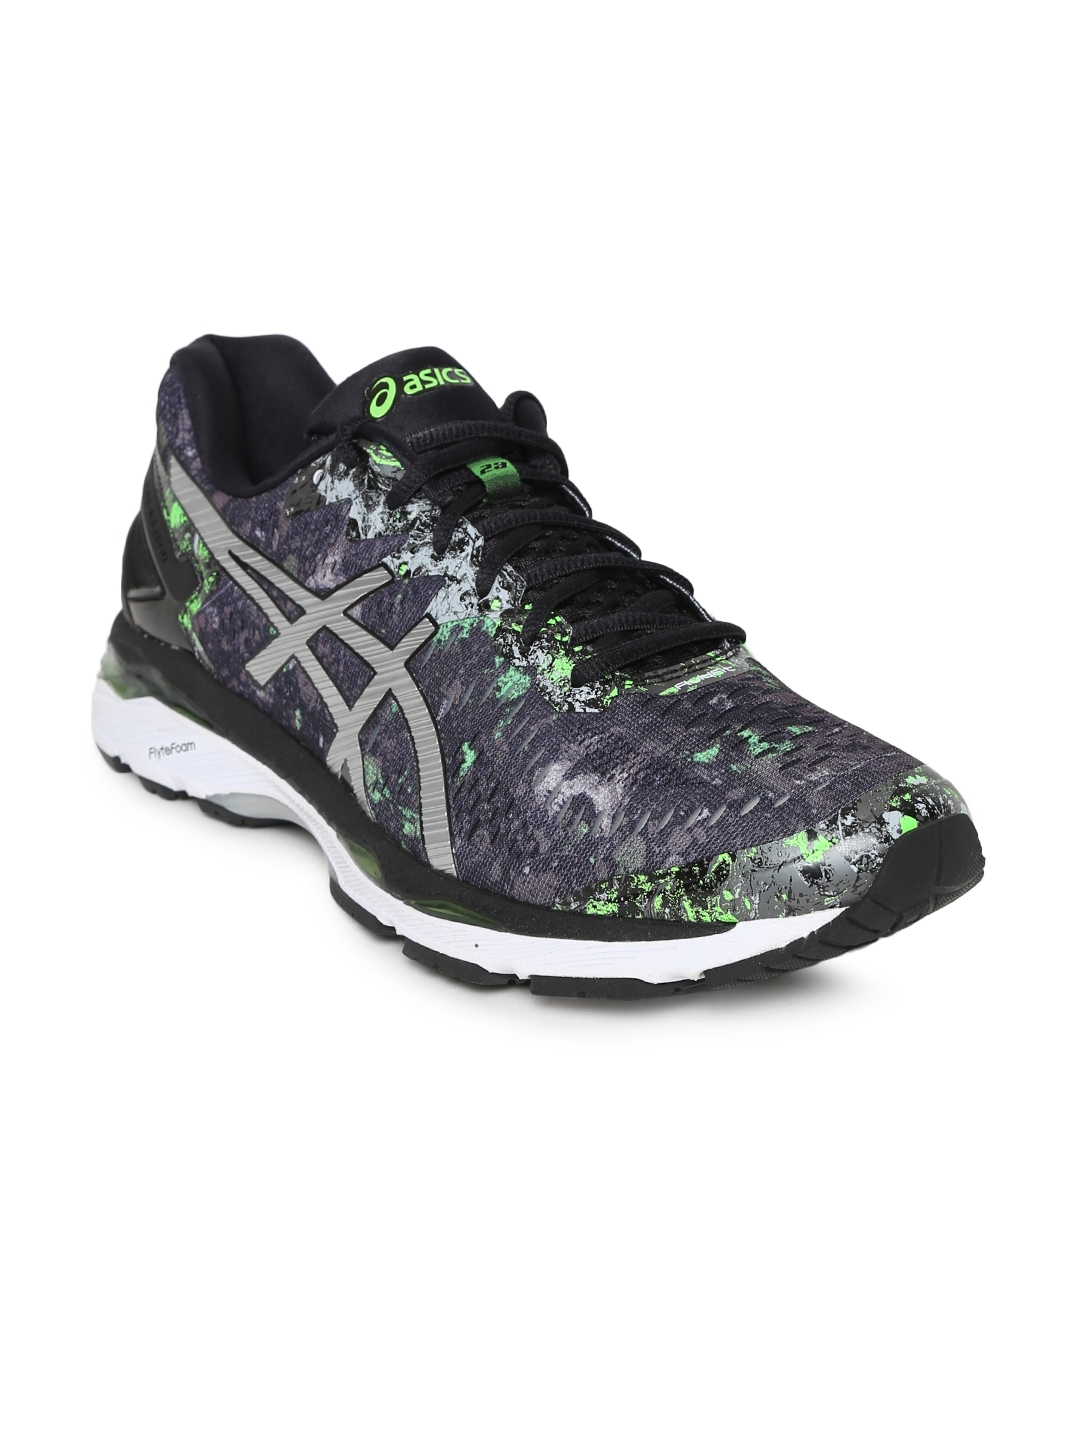 Buy ASICS Men Grey GEL KAYANO 23 Running Shoes - Sports Shoes for ... 5bef02862f